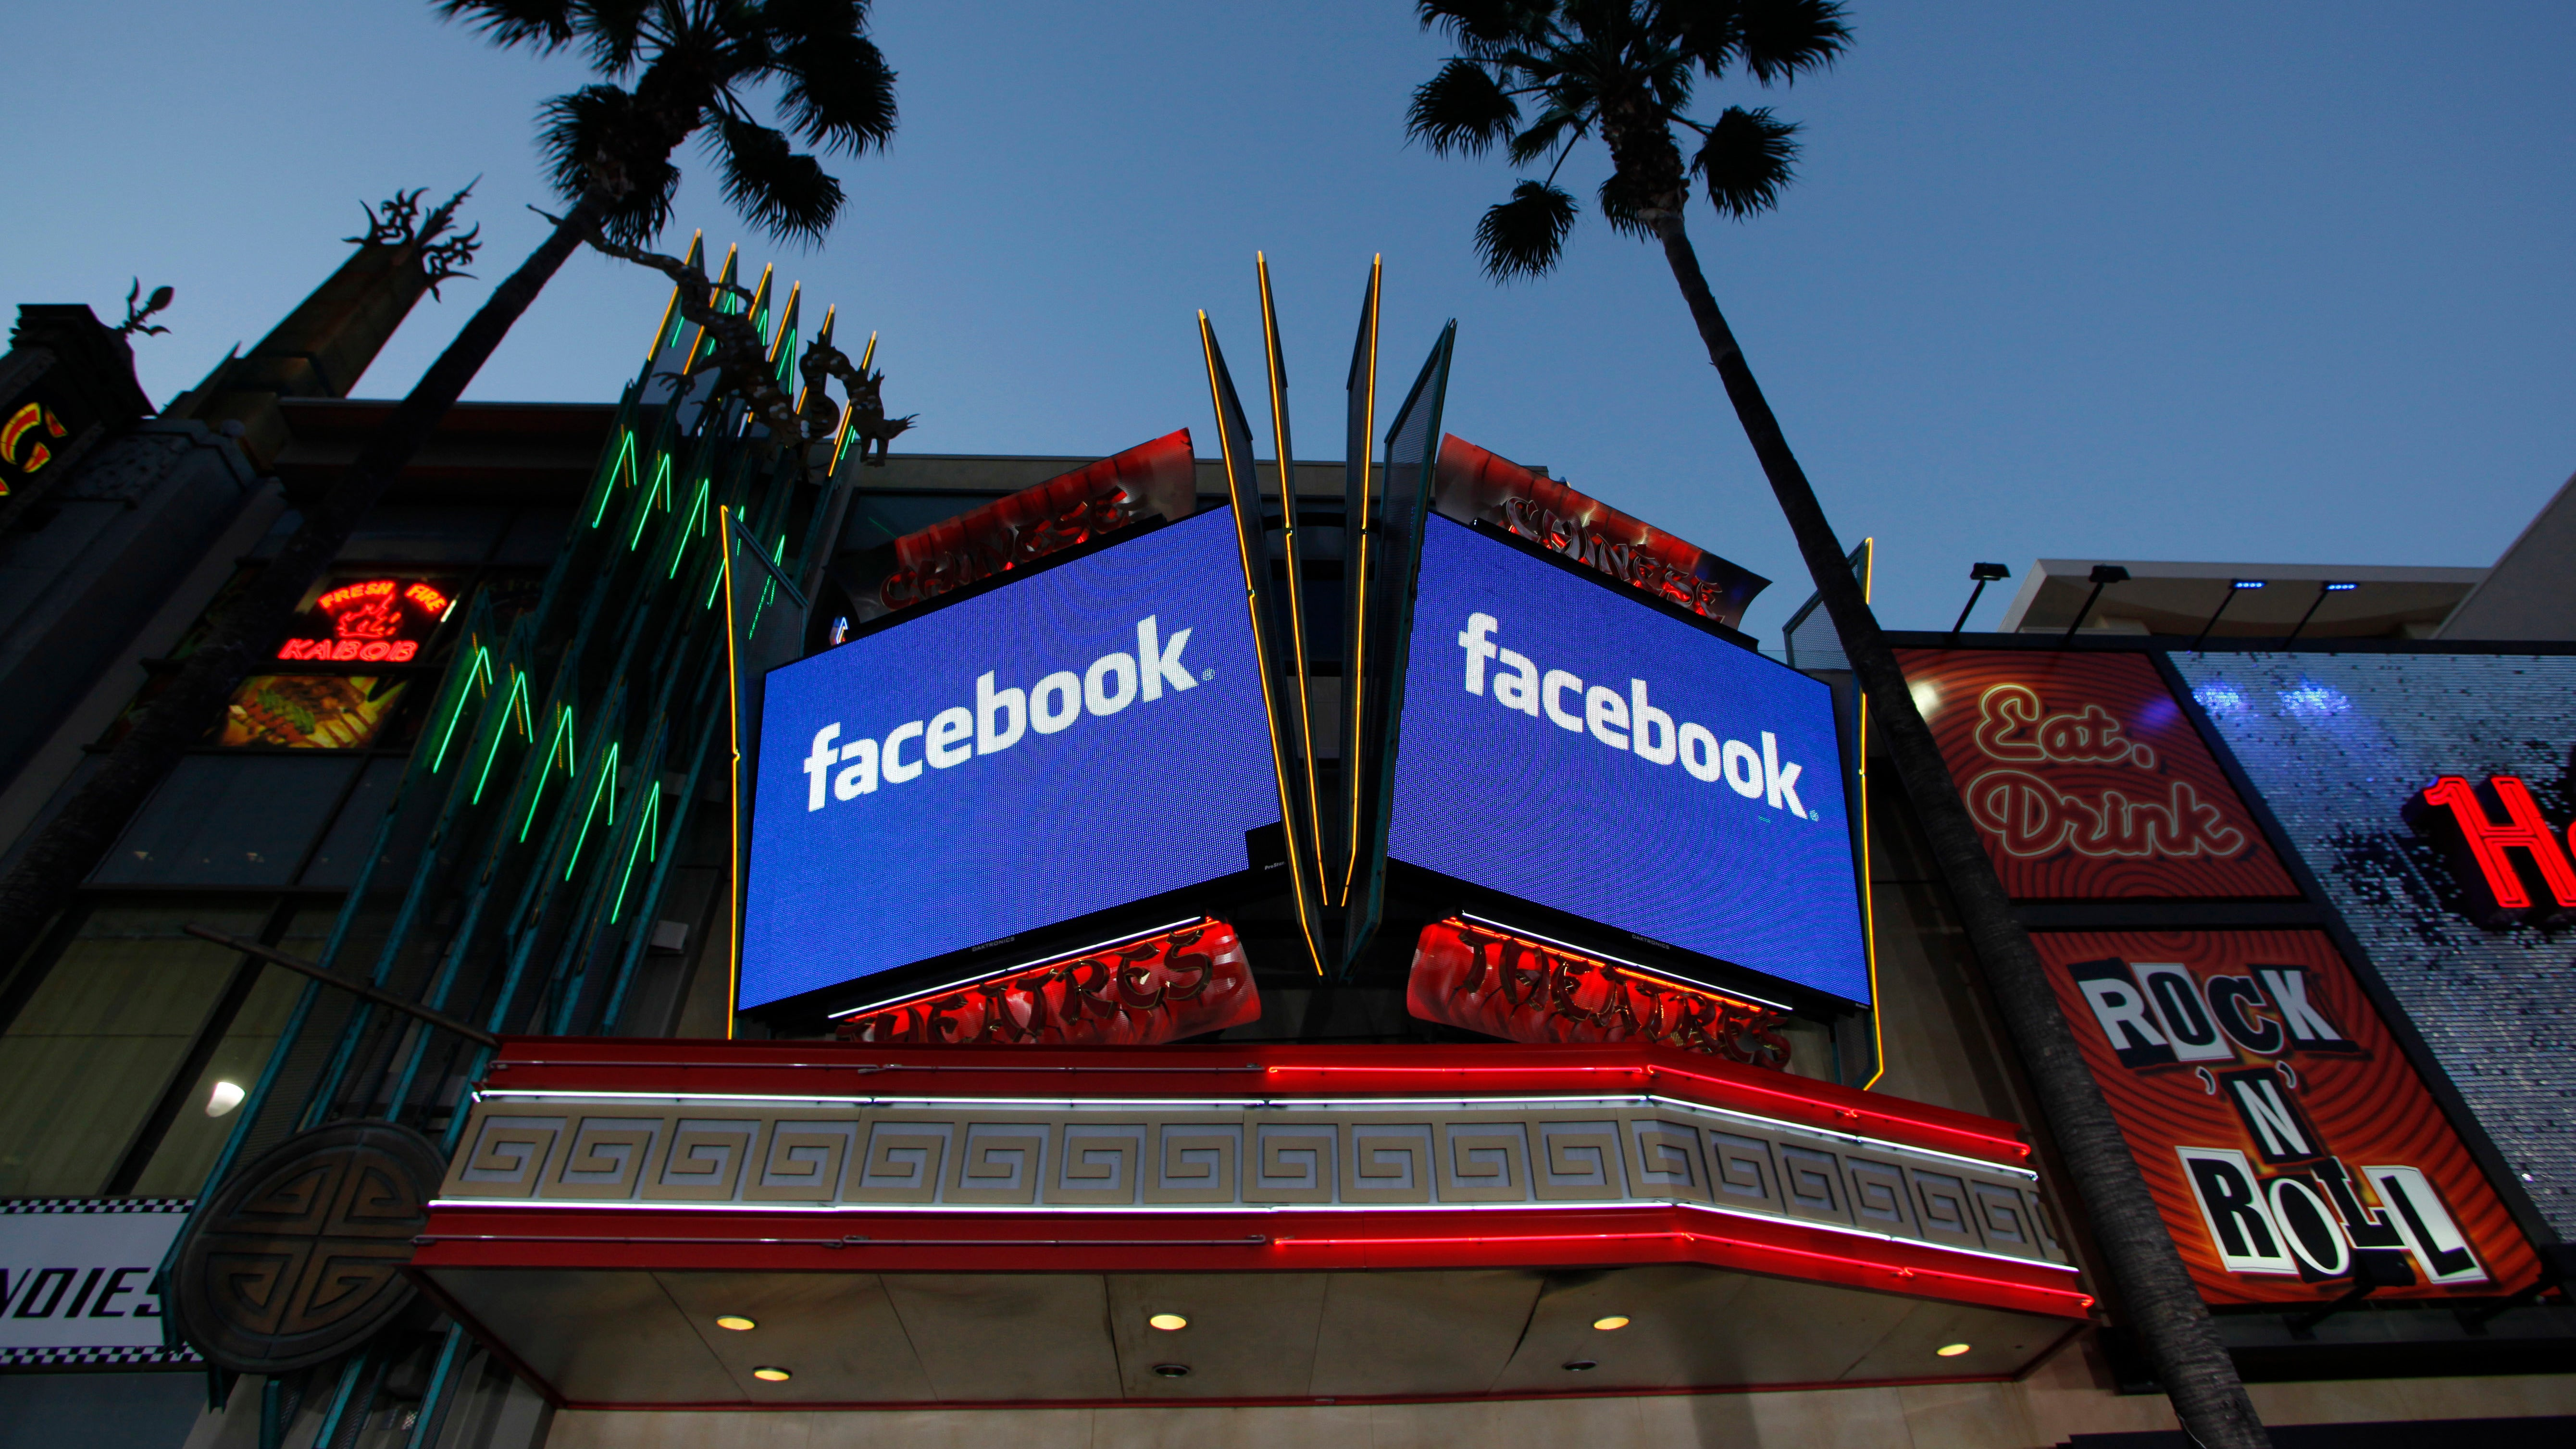 Facebook: Would It Help If We Traded Less User Info With Huge Data Brokers?